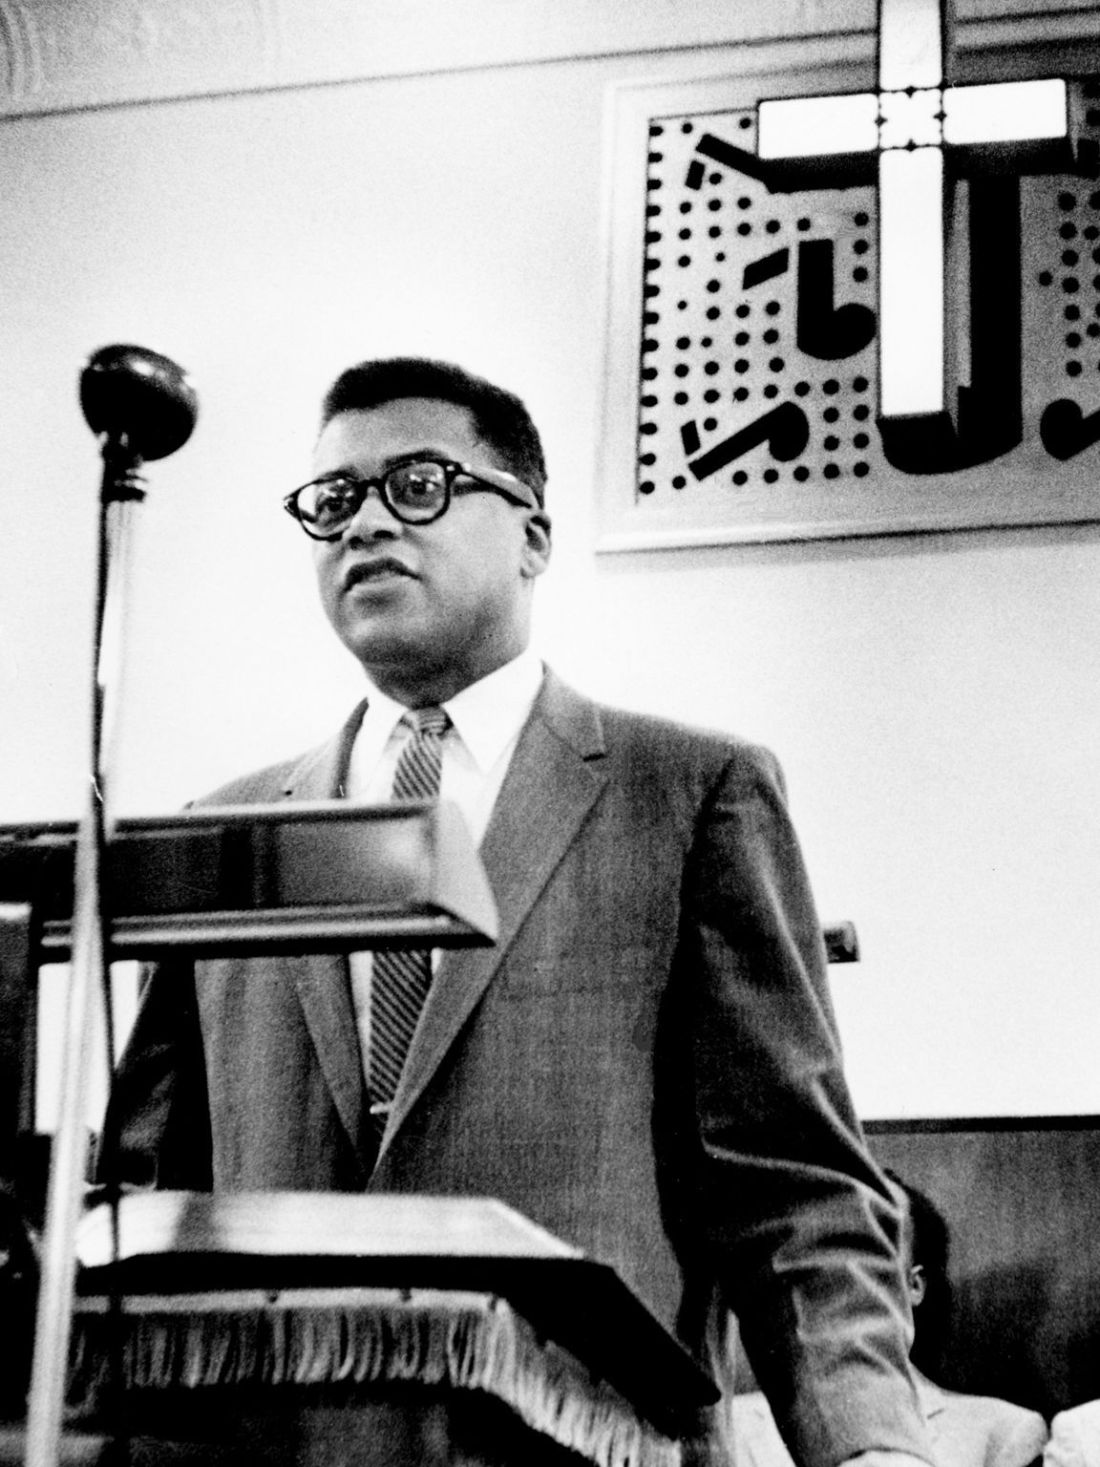 Reverend James Lawson, James Lawson, African American History, Black History, African American Activist, Civil Rights, Martin Luther King, MLK, KOLUMN Magazine, KOLUMN, KINDR'D Magazine, KINDR'D